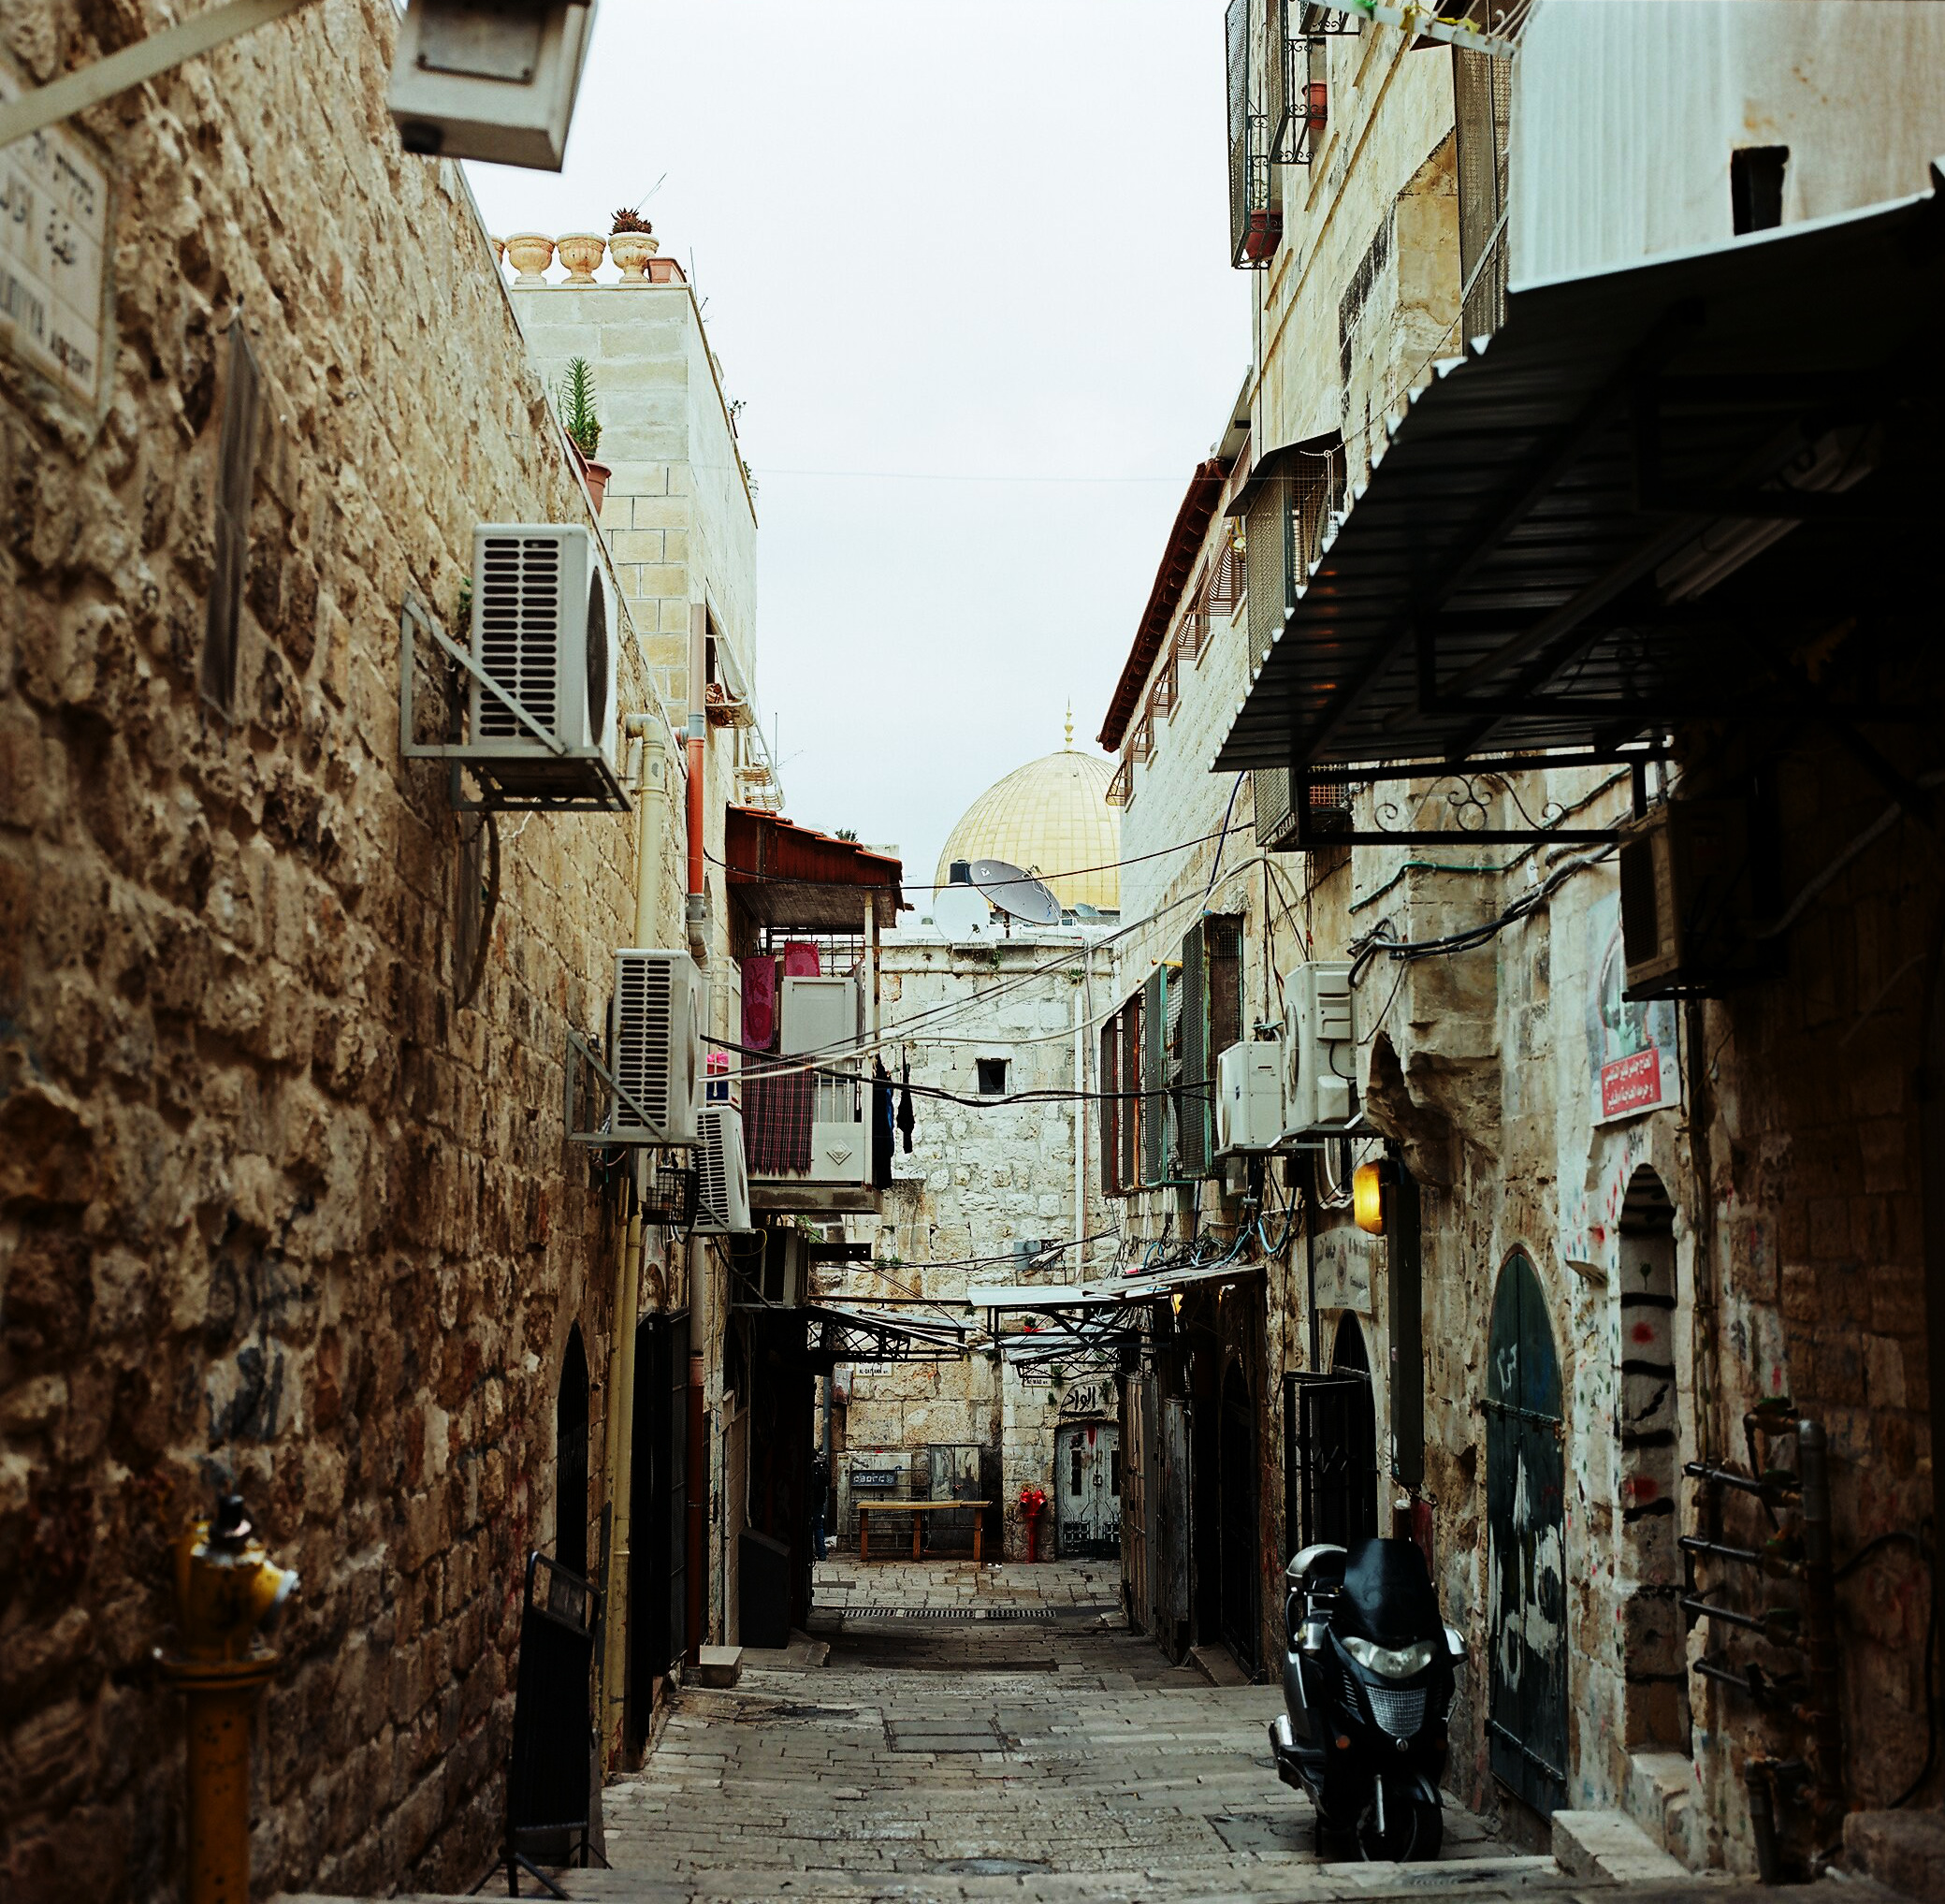 A street in Jerusalem with a view of the gold-plated Dome of the Rock.